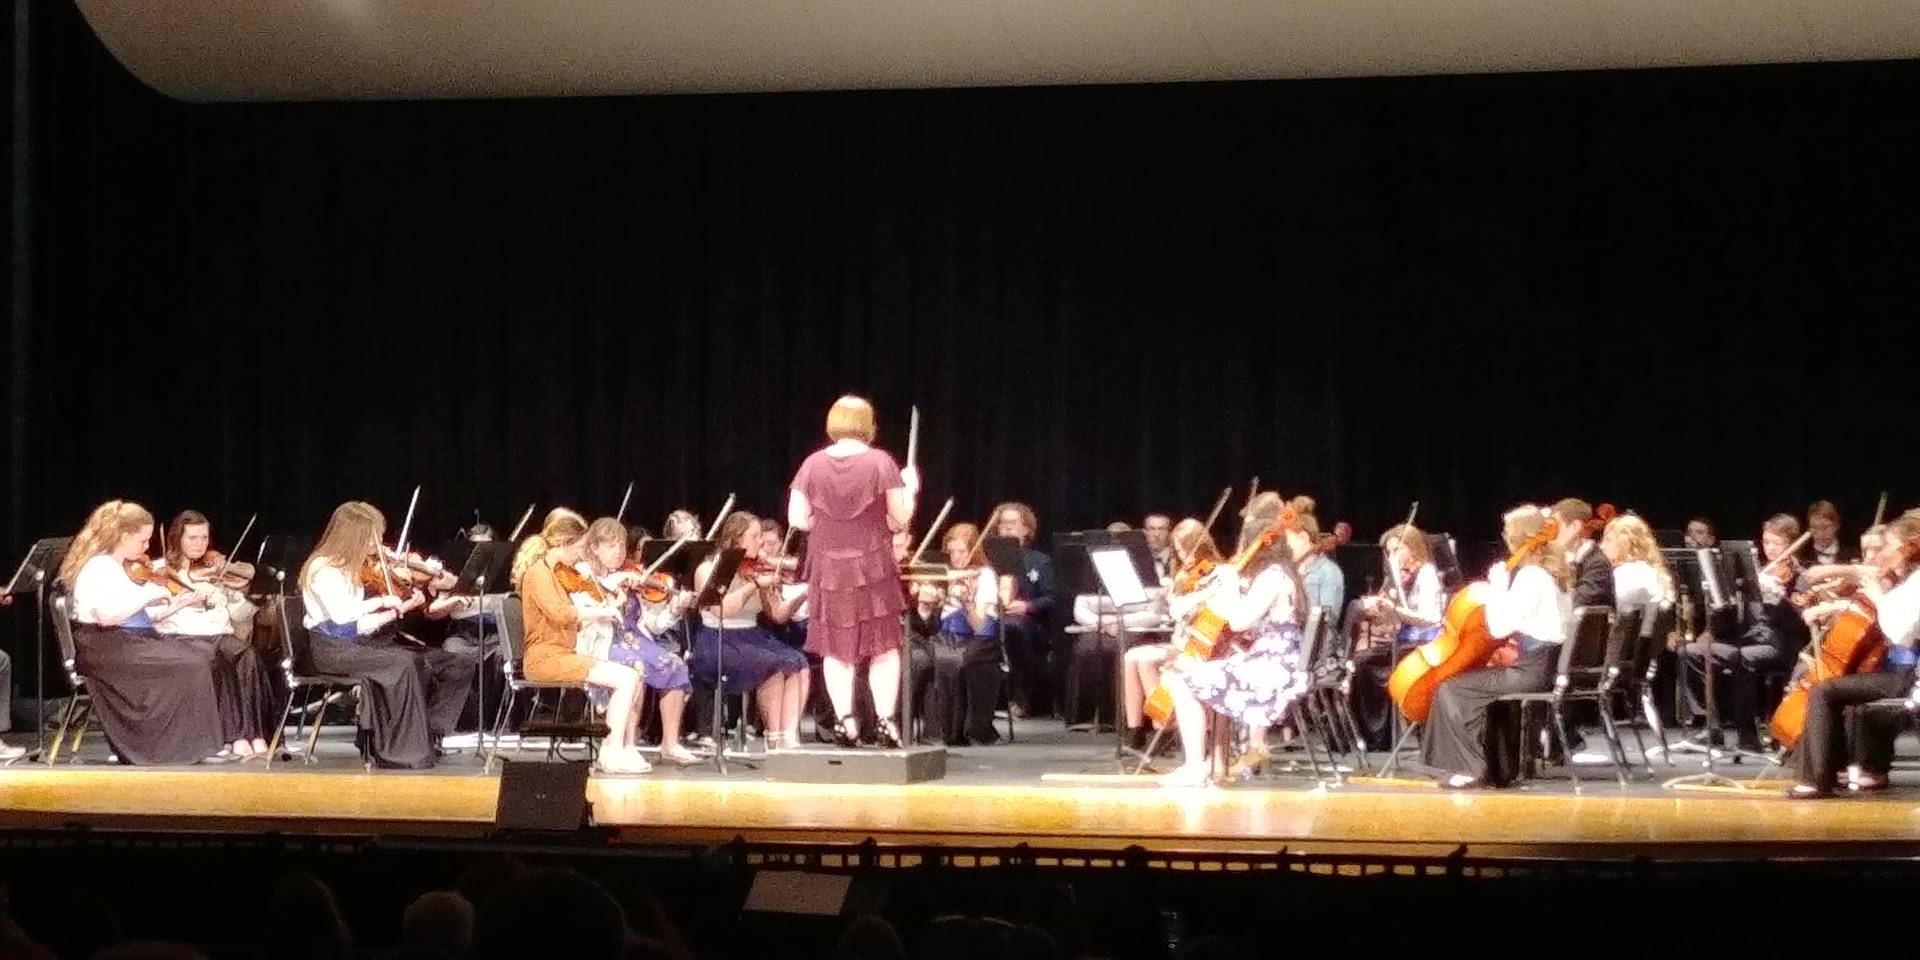 Orchestra President S. Krichbaum directs the orchestra